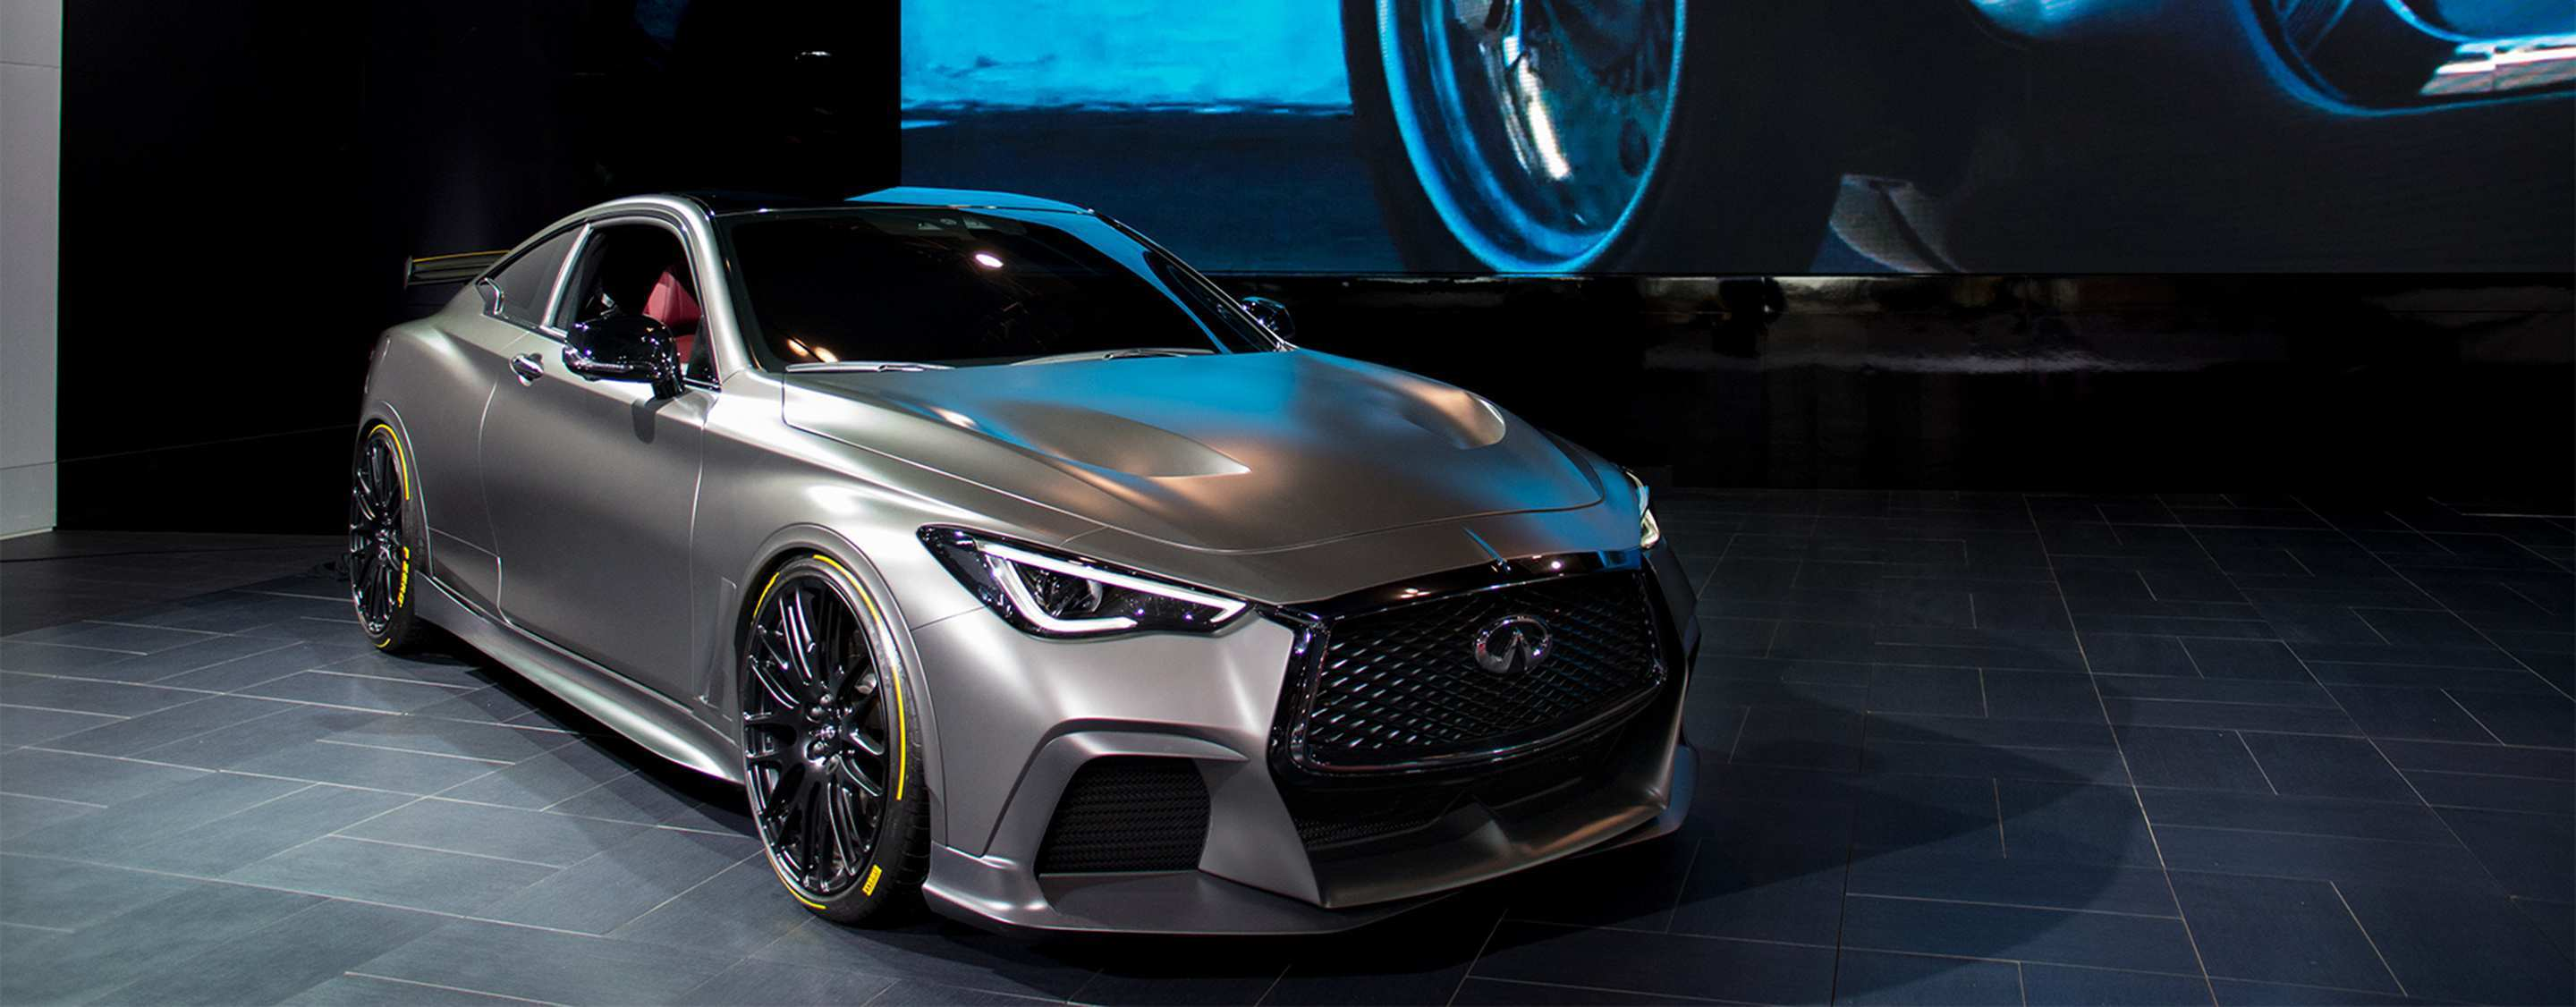 57 All New 2020 Infiniti Q60 Project Black S New Review for 2020 Infiniti Q60 Project Black S